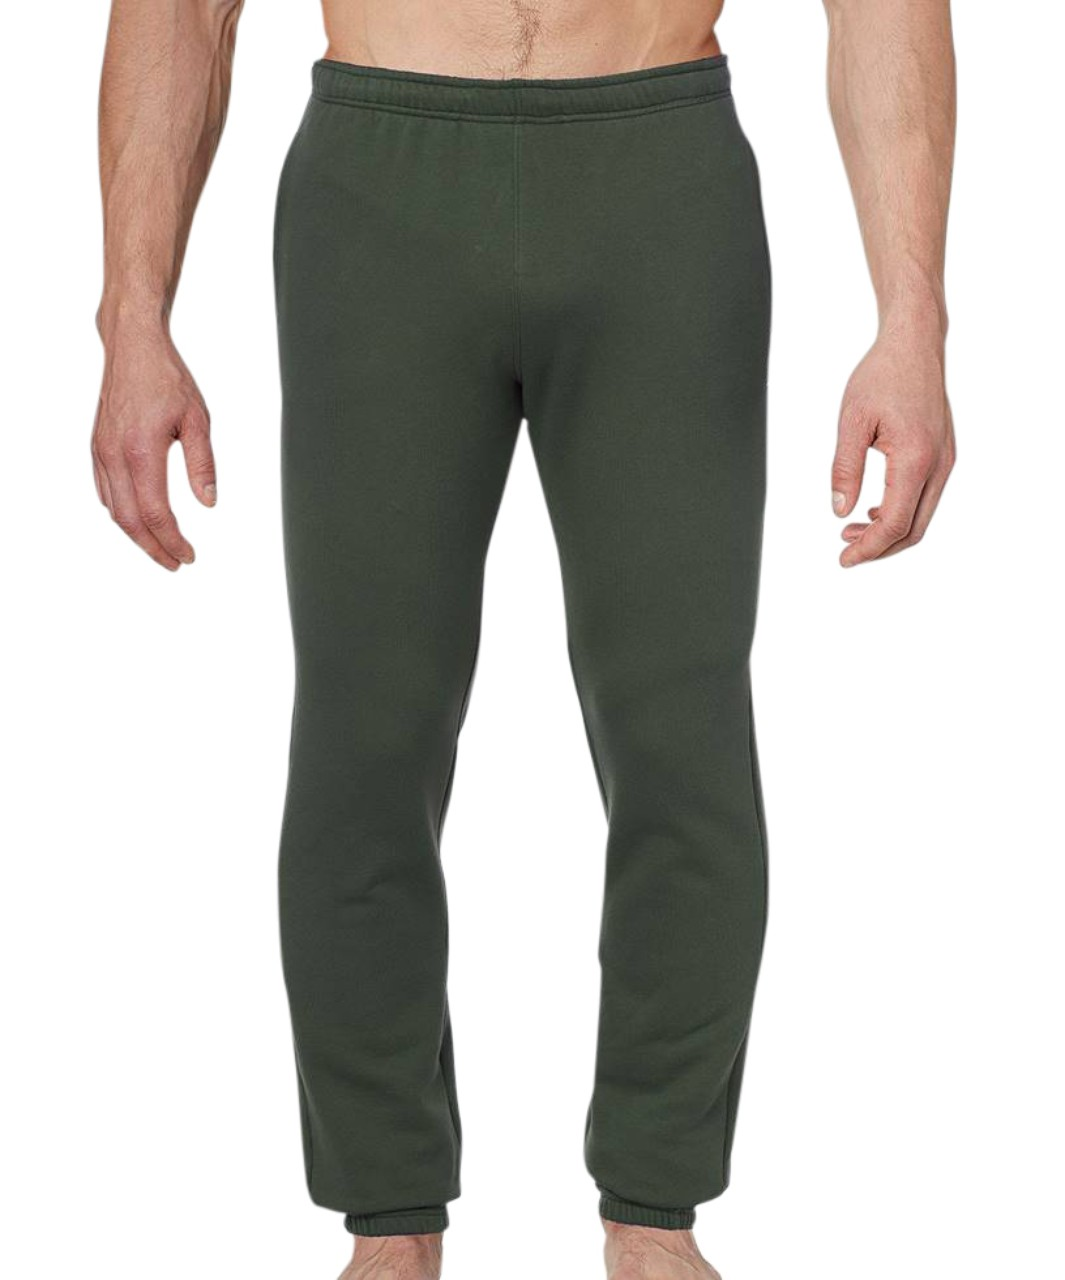 Ron Dorff Jogging Trousers in Khaki